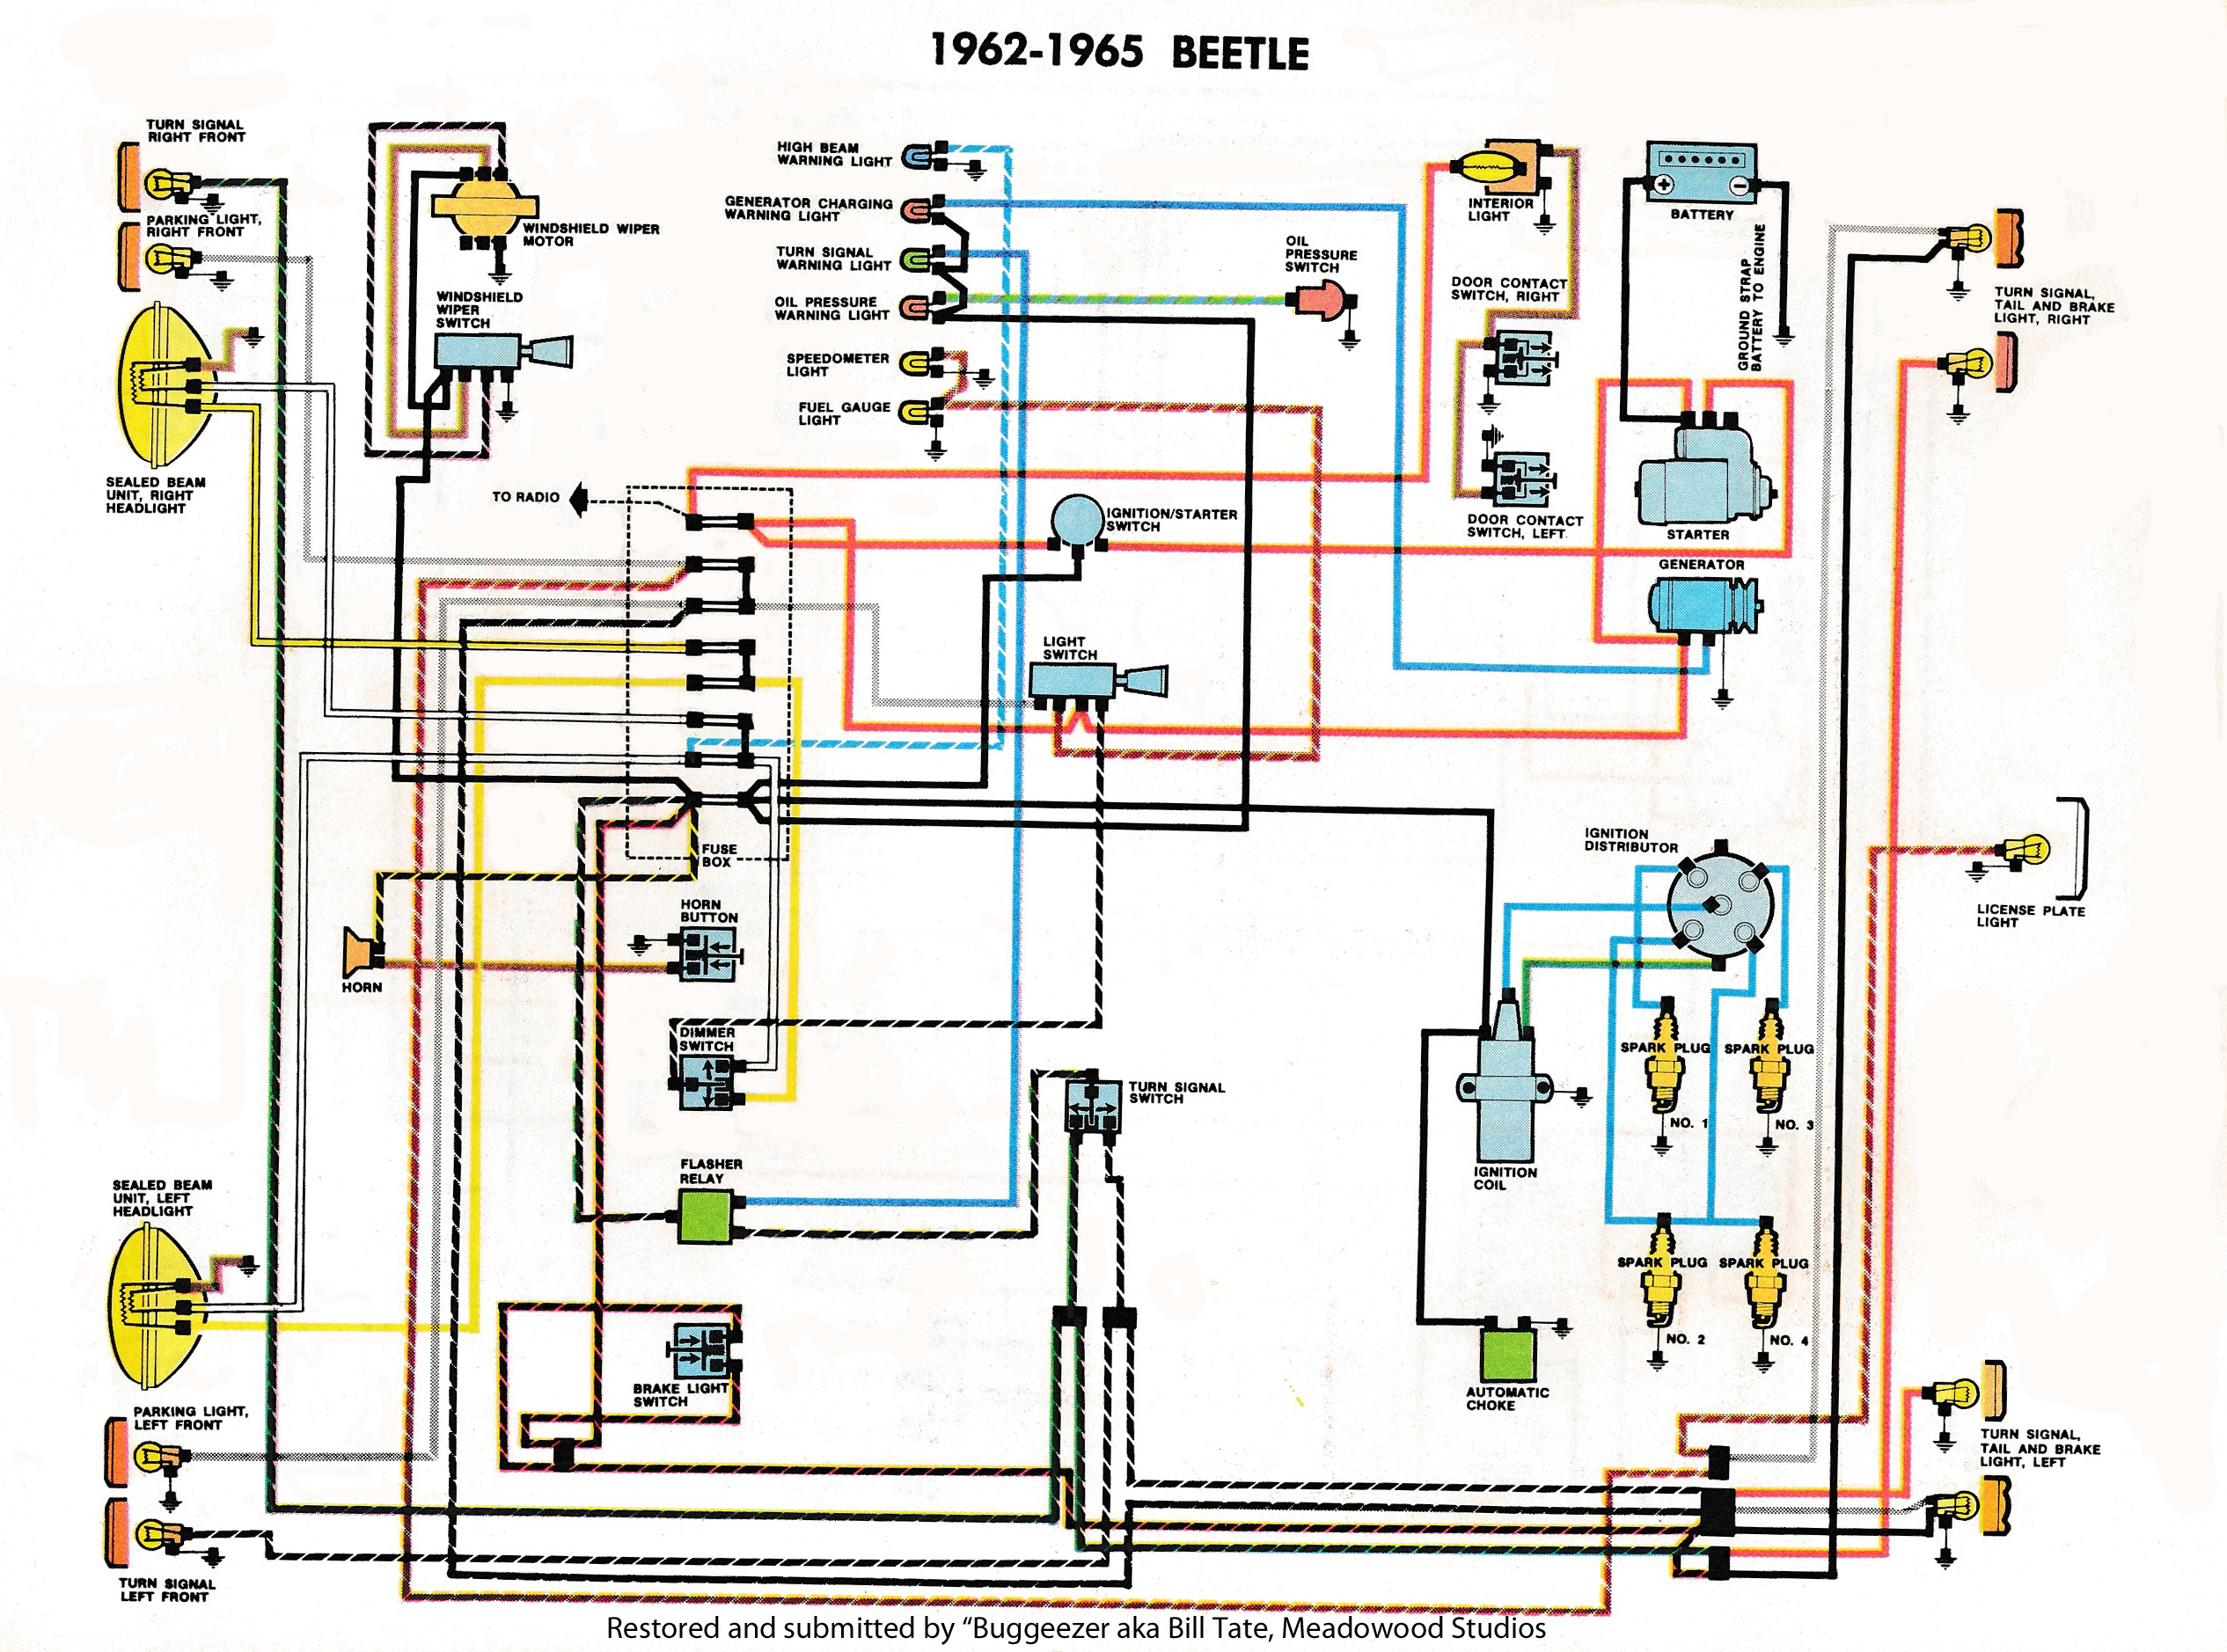 2004 Gto Fuse Box Diagram Starting Know About Wiring Mitsubishi 3000gt Thesamba Com Type 1 Diagrams